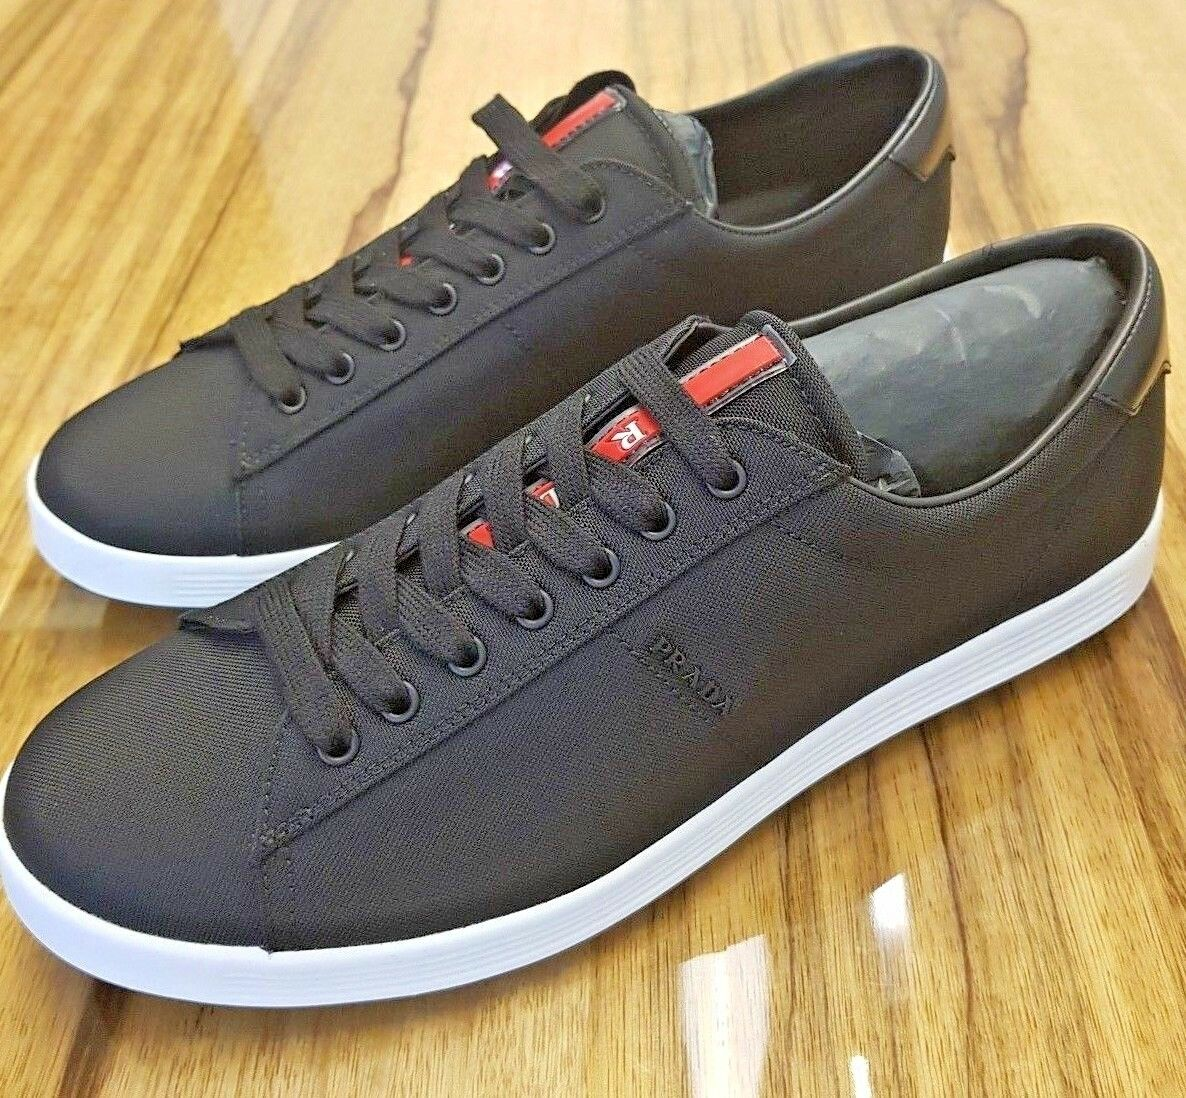 232c28d6ccbf Prada shoes shoes shoes men black and white fashion sneakers SIZES ...